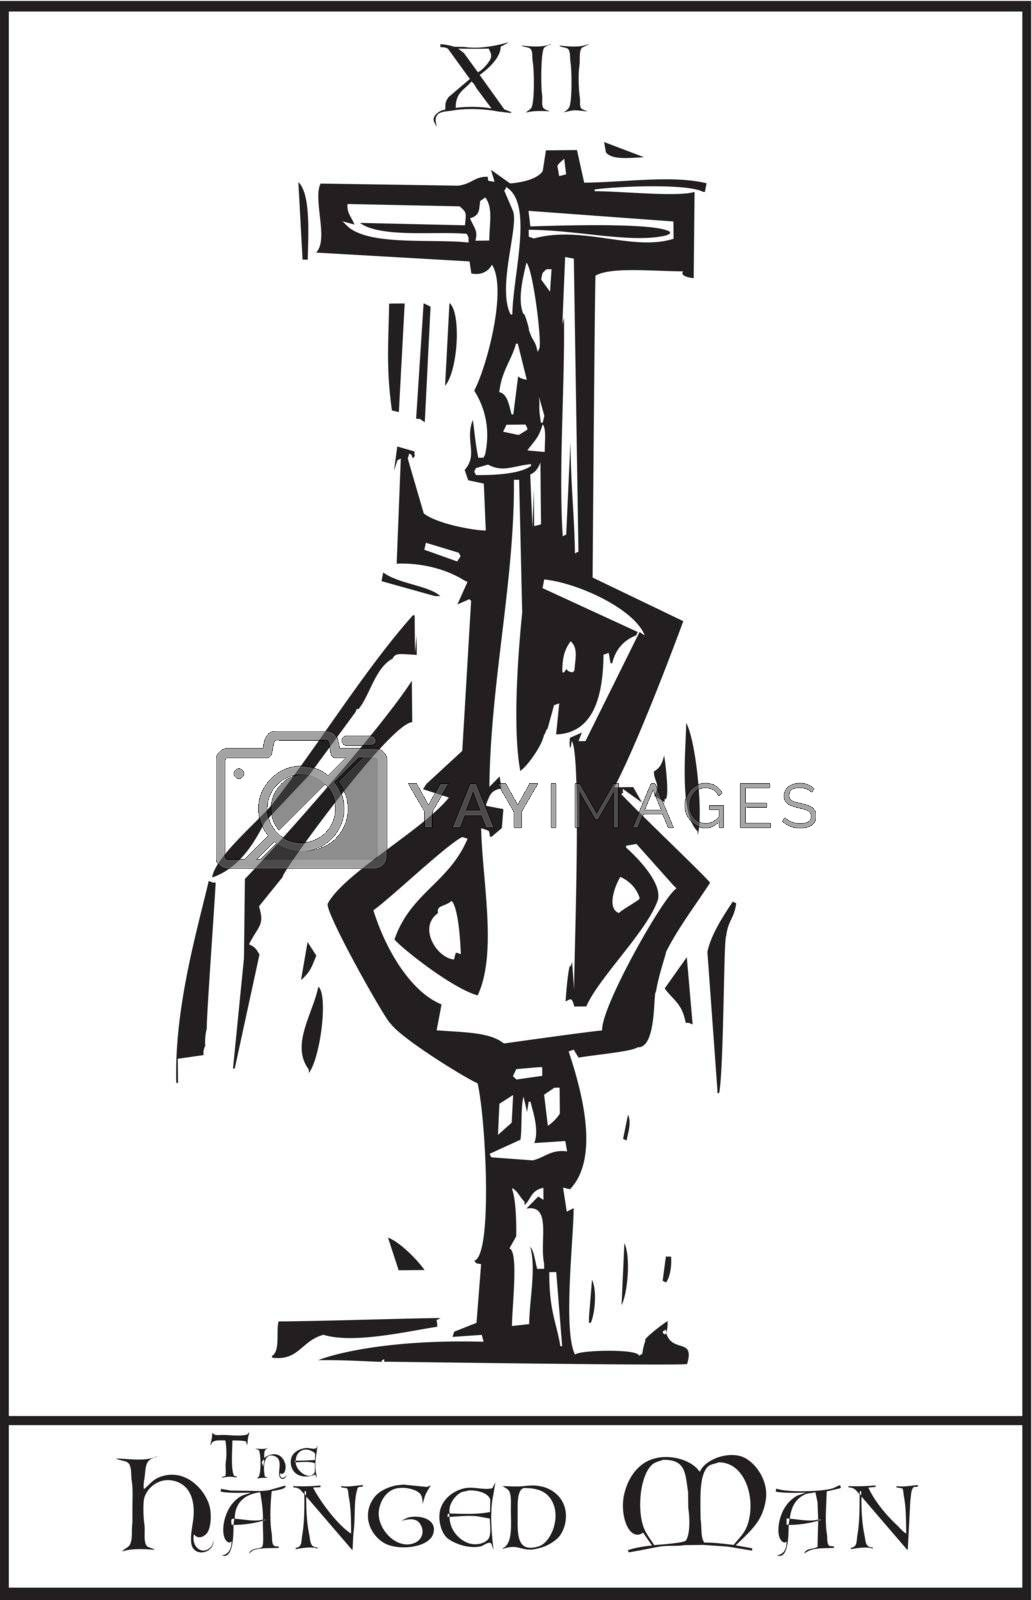 Woodcut expressionist style Tarot Card Major Arcana image of the Hanged Man